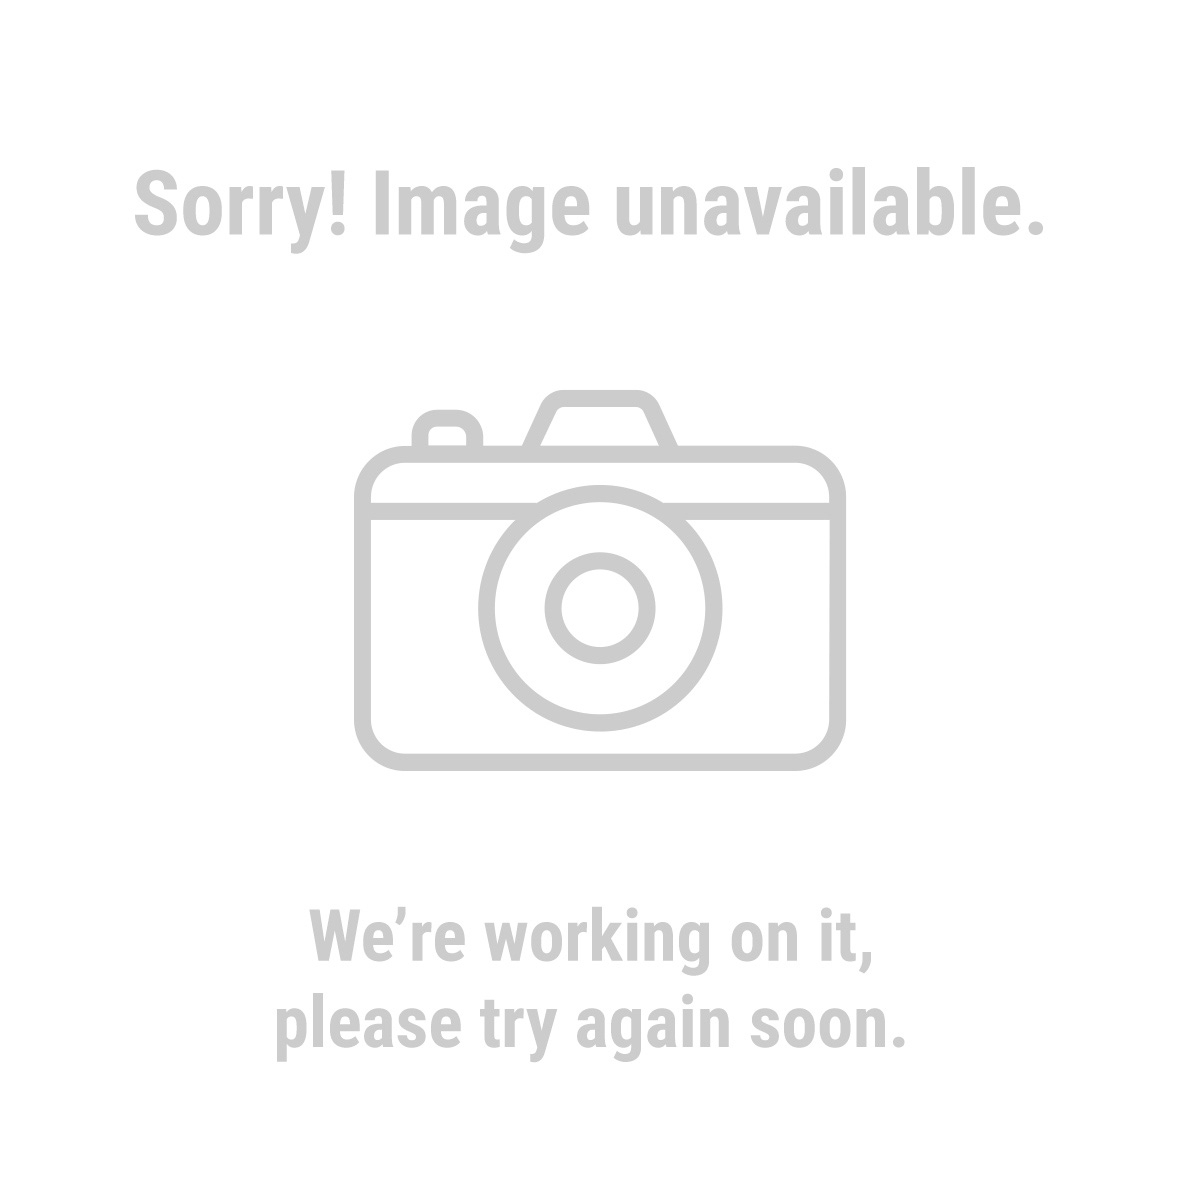 Parts-Diyer Portable Hubs Wheel Tire Balancer Changer with Bubble Level Heavy Duty Rim Tire Balancer for Cars Truck